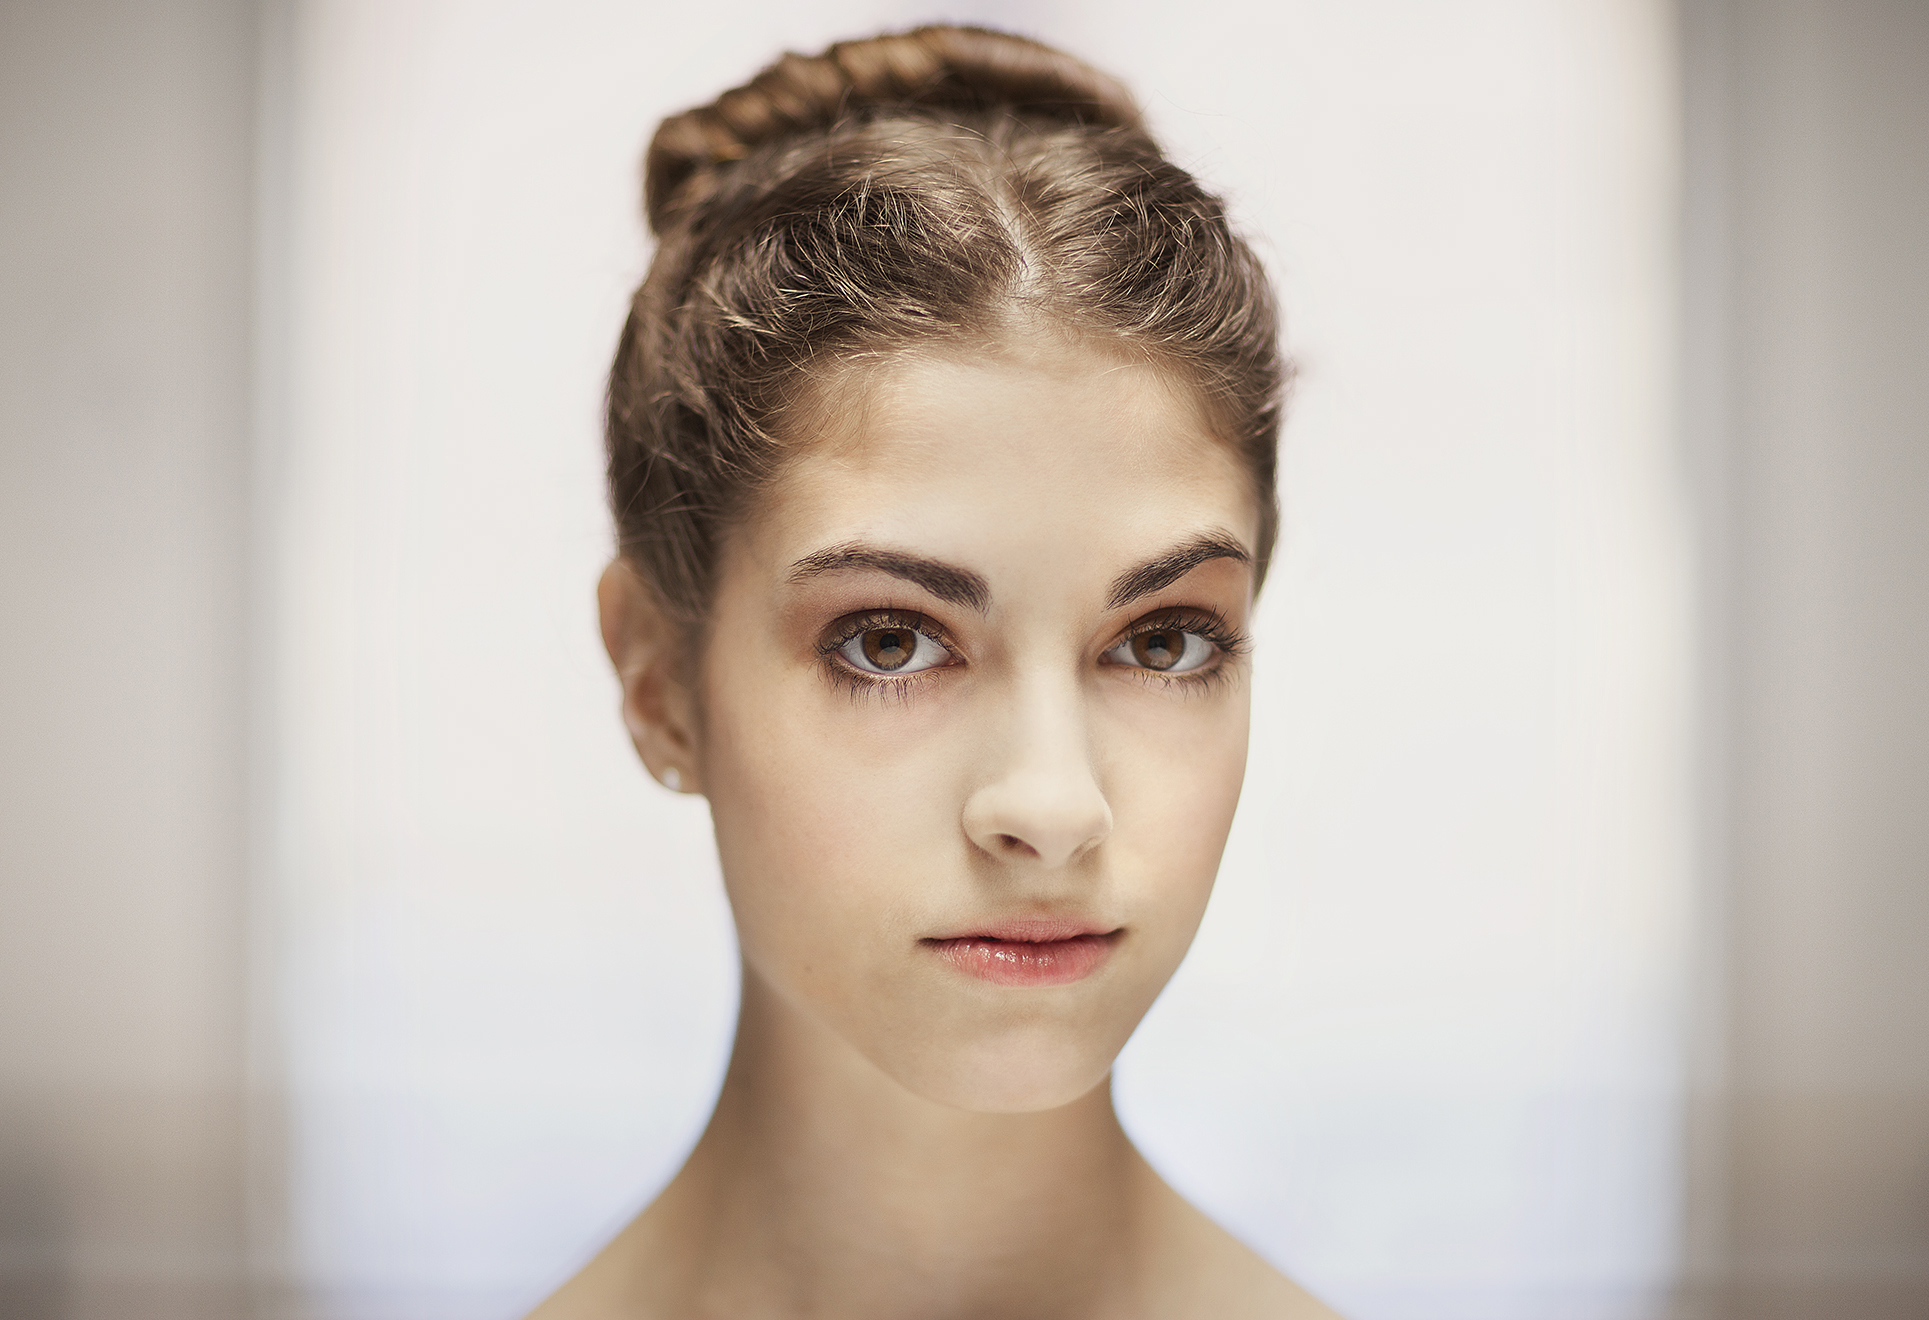 The Ballerina, portrait retouching